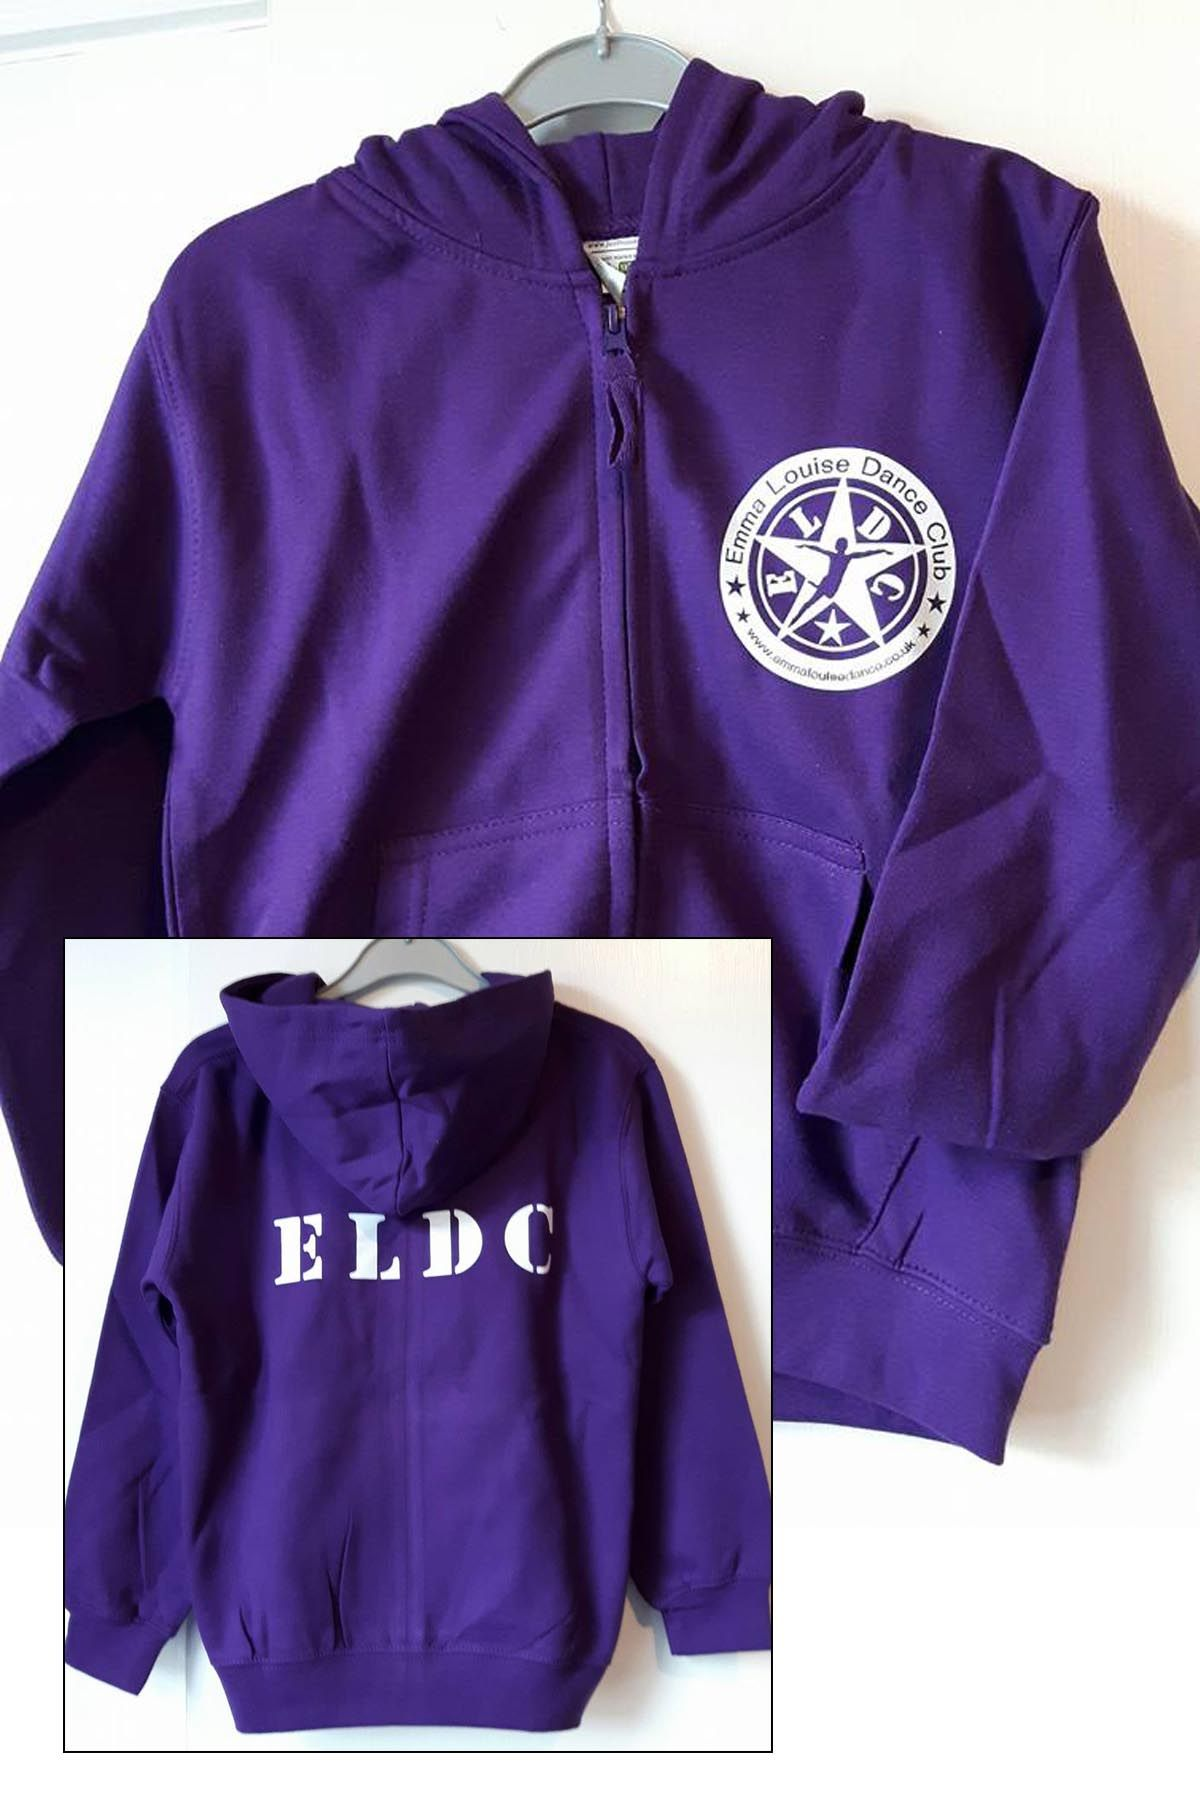 Uniform ELDC Purple Zip Hoodie